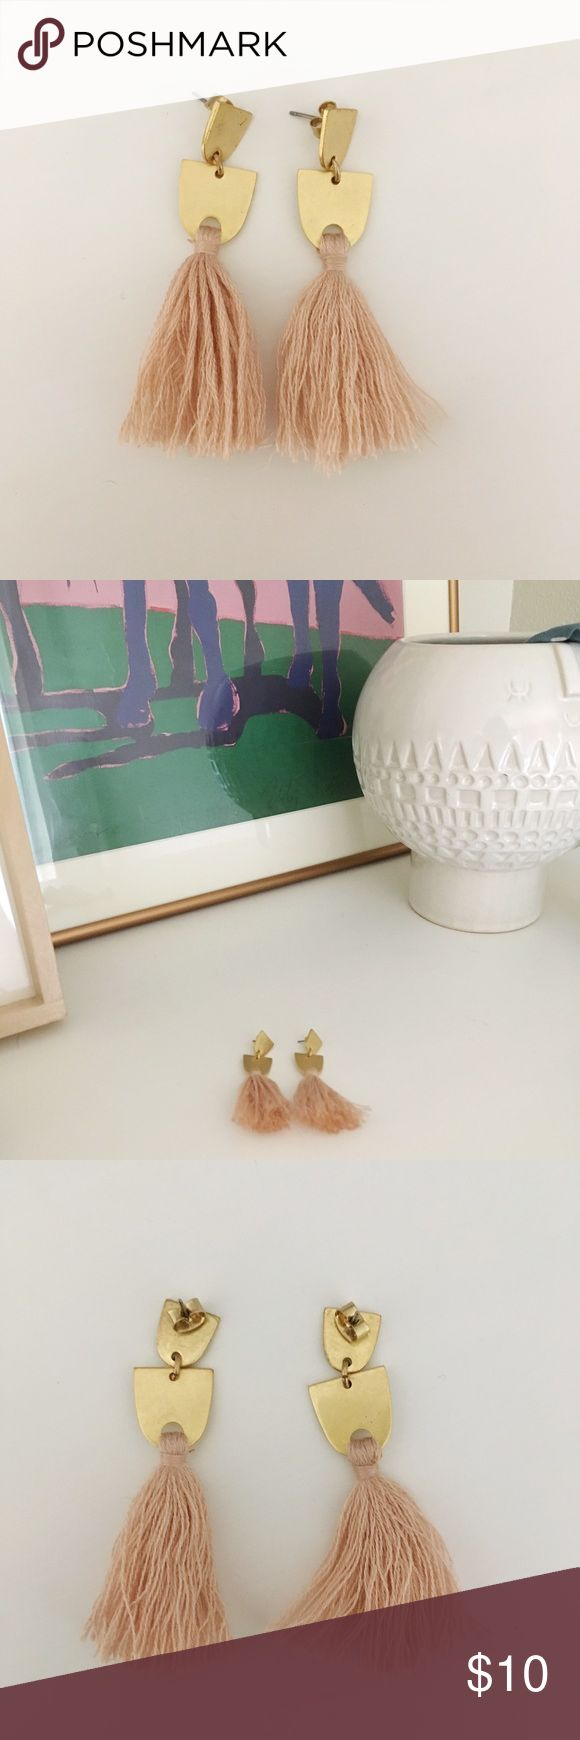 Millennial Pink and Gold Tassel Earring These super lightweight tassel earrings with gold details from Madewell are so cute and comfortable. Madewell Jewelry Earrings